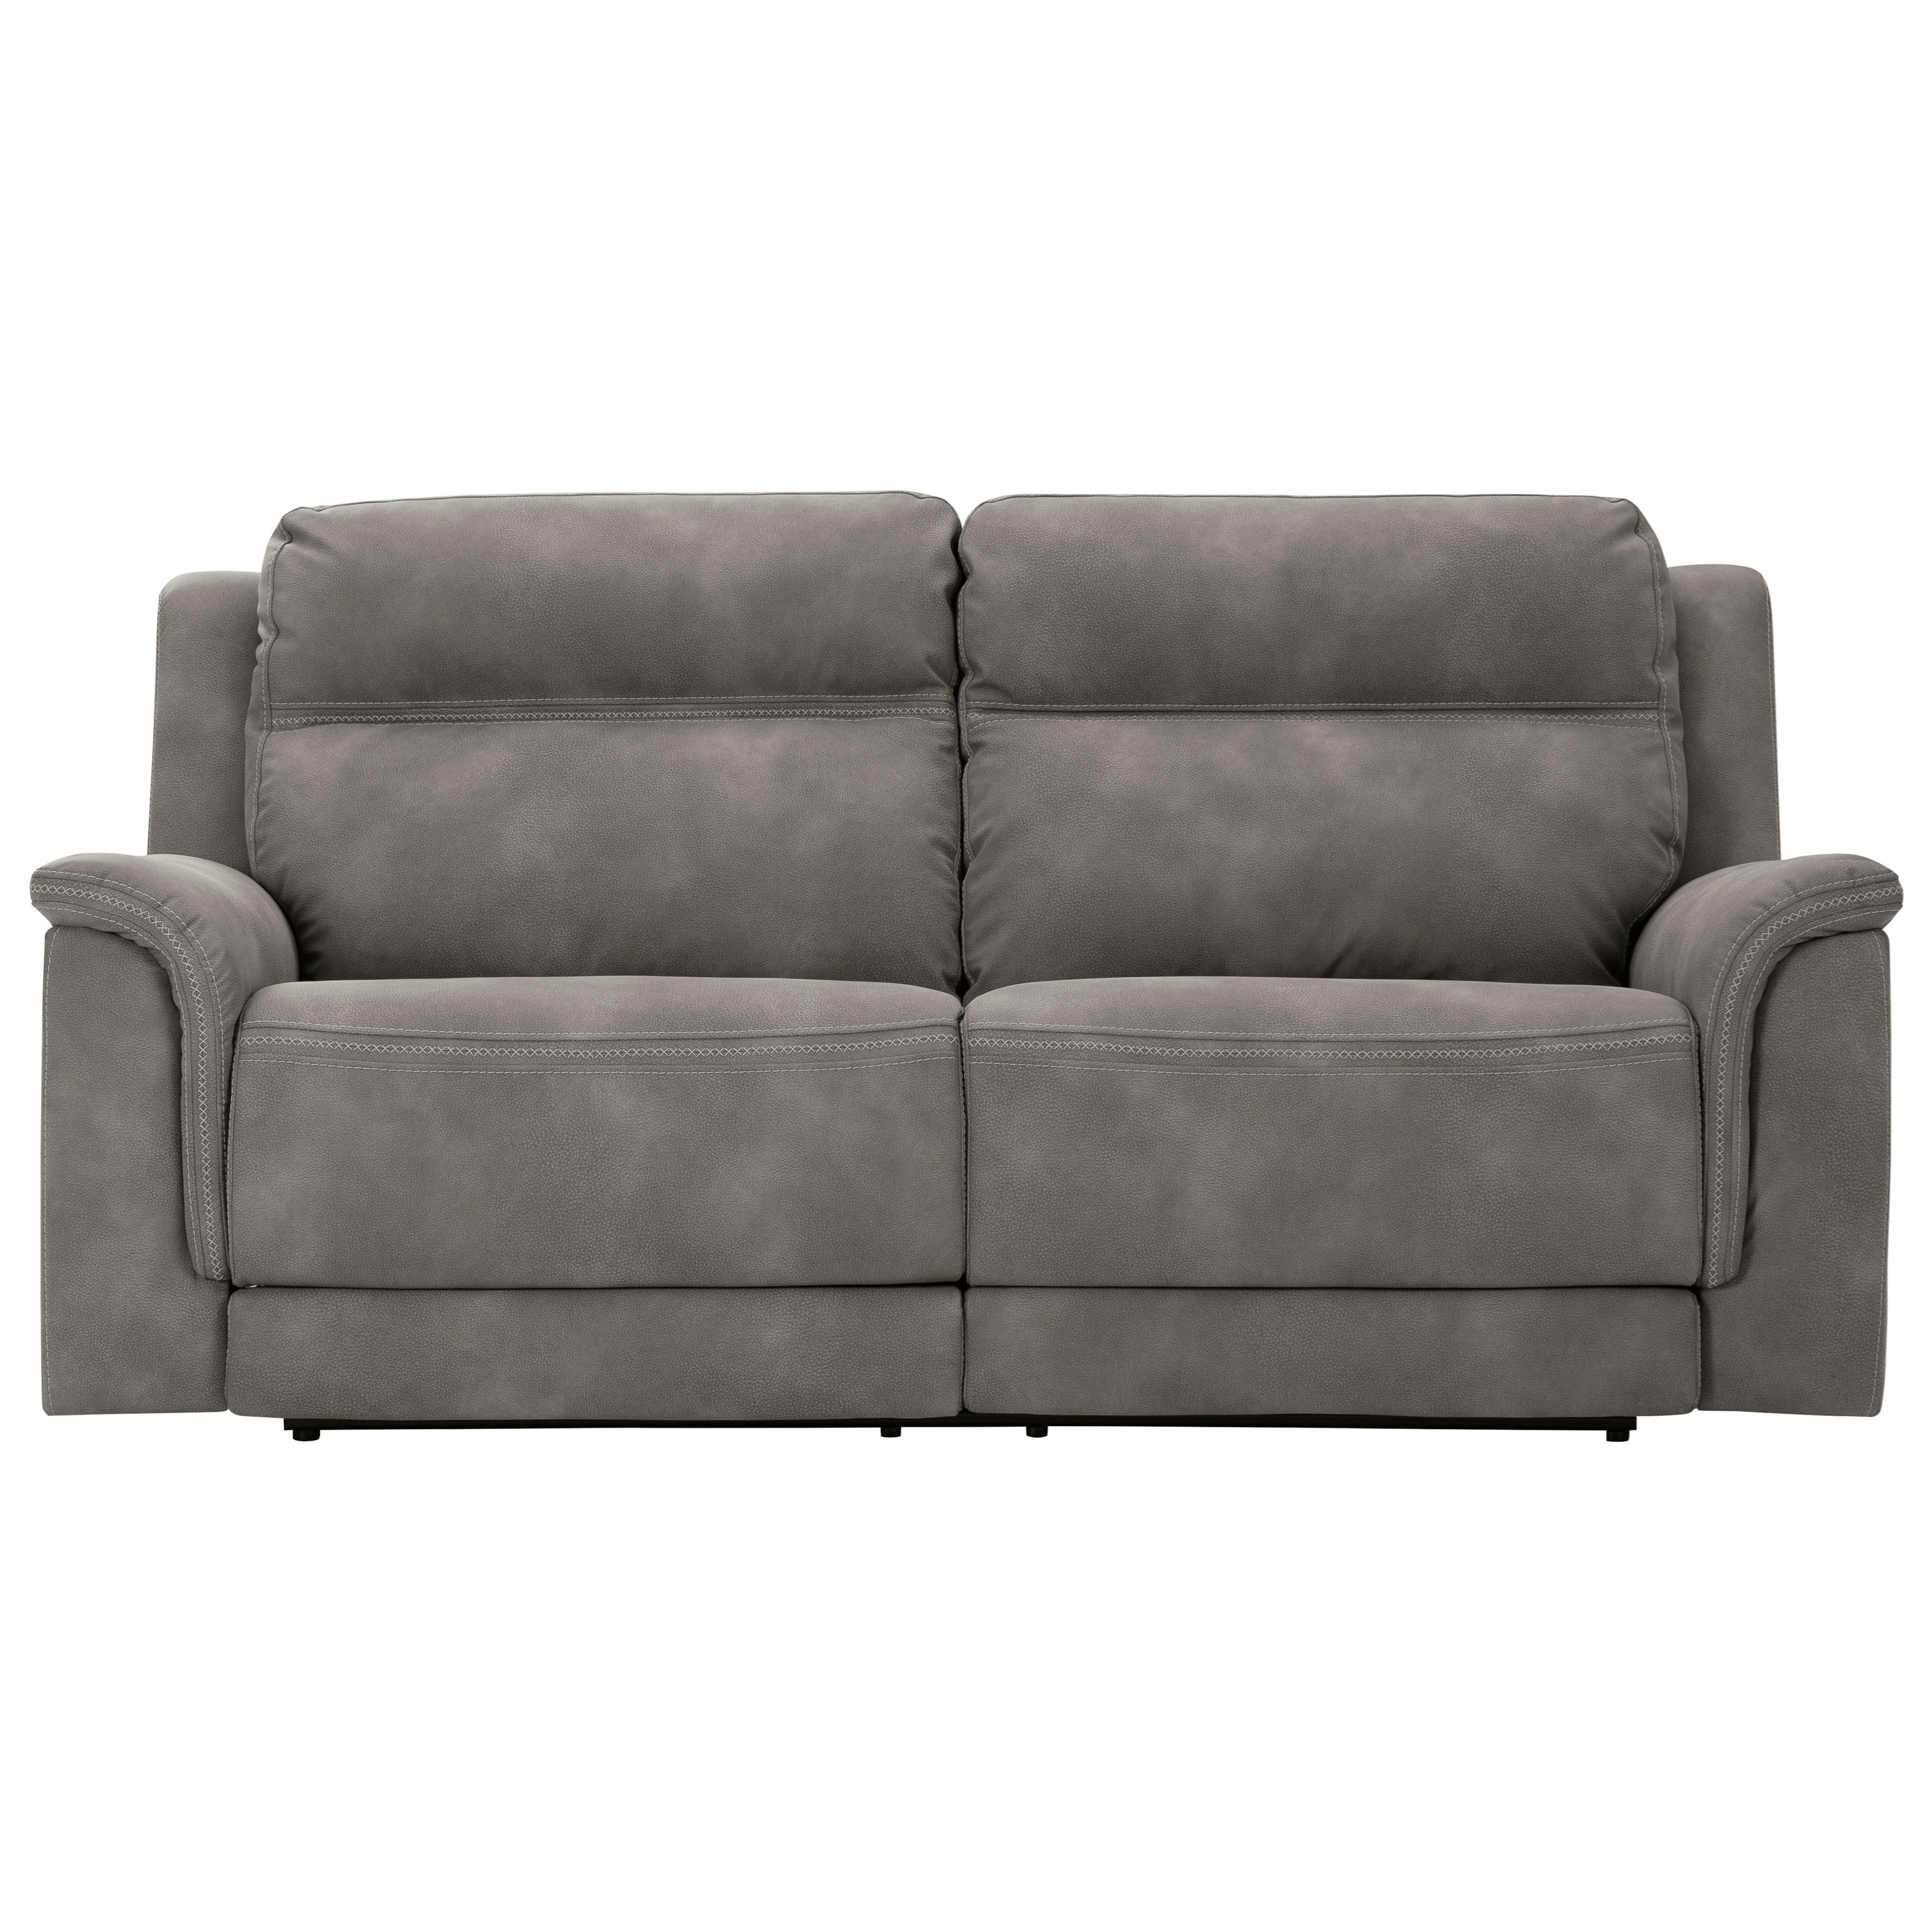 Next-Gen DuraPella 2-Seat Pwr Rec Sofa  w/ Adj Headrests by Signature Design by Ashley at Northeast Factory Direct